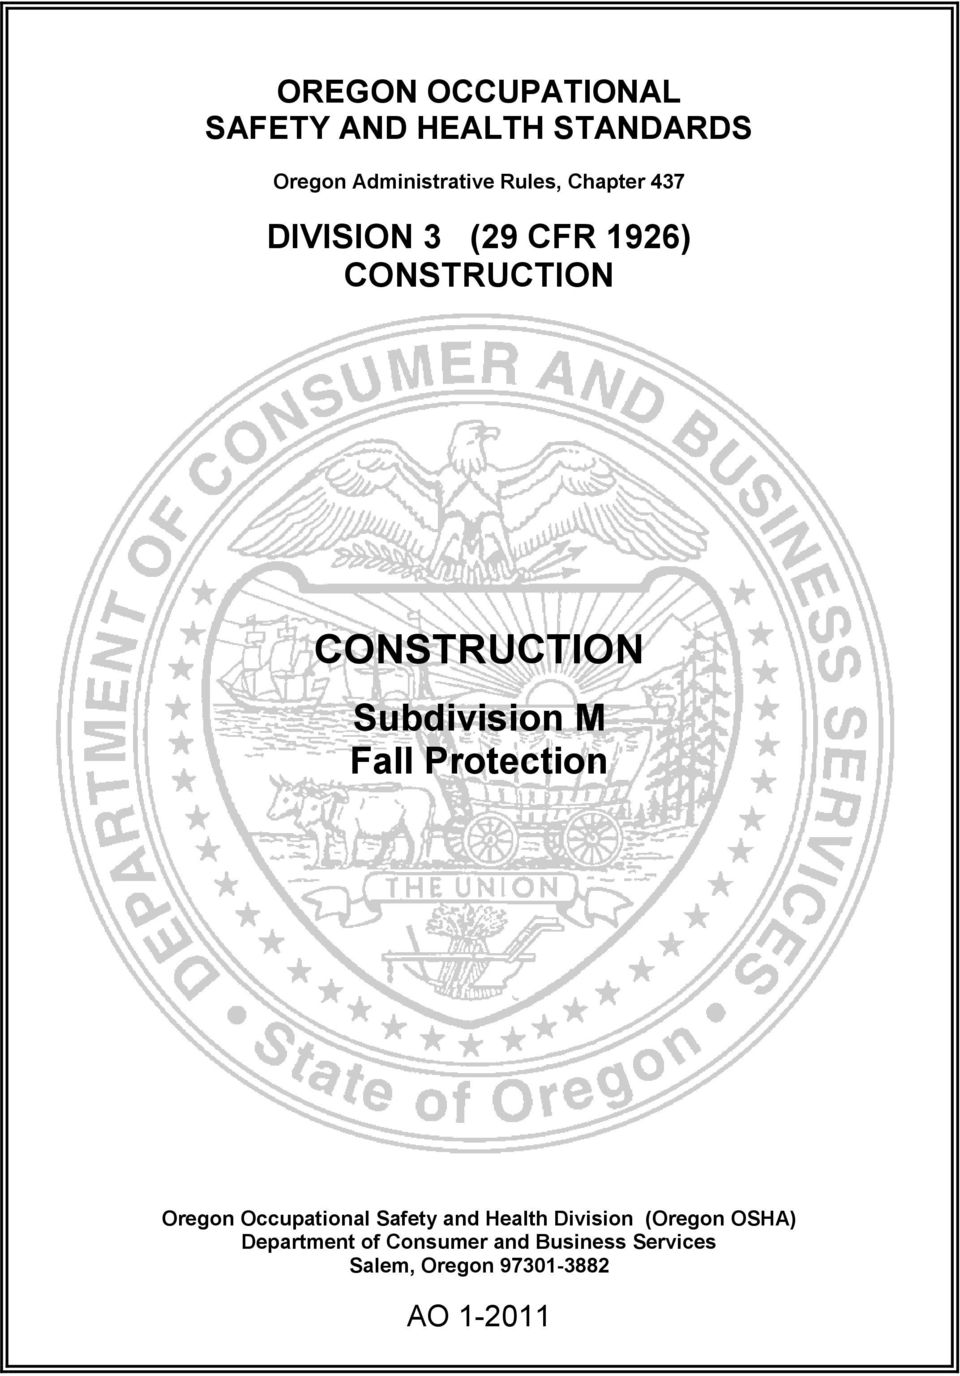 CONSTRUCTION CONSTRUCTION Subdivision M Fall Protection (Oregon